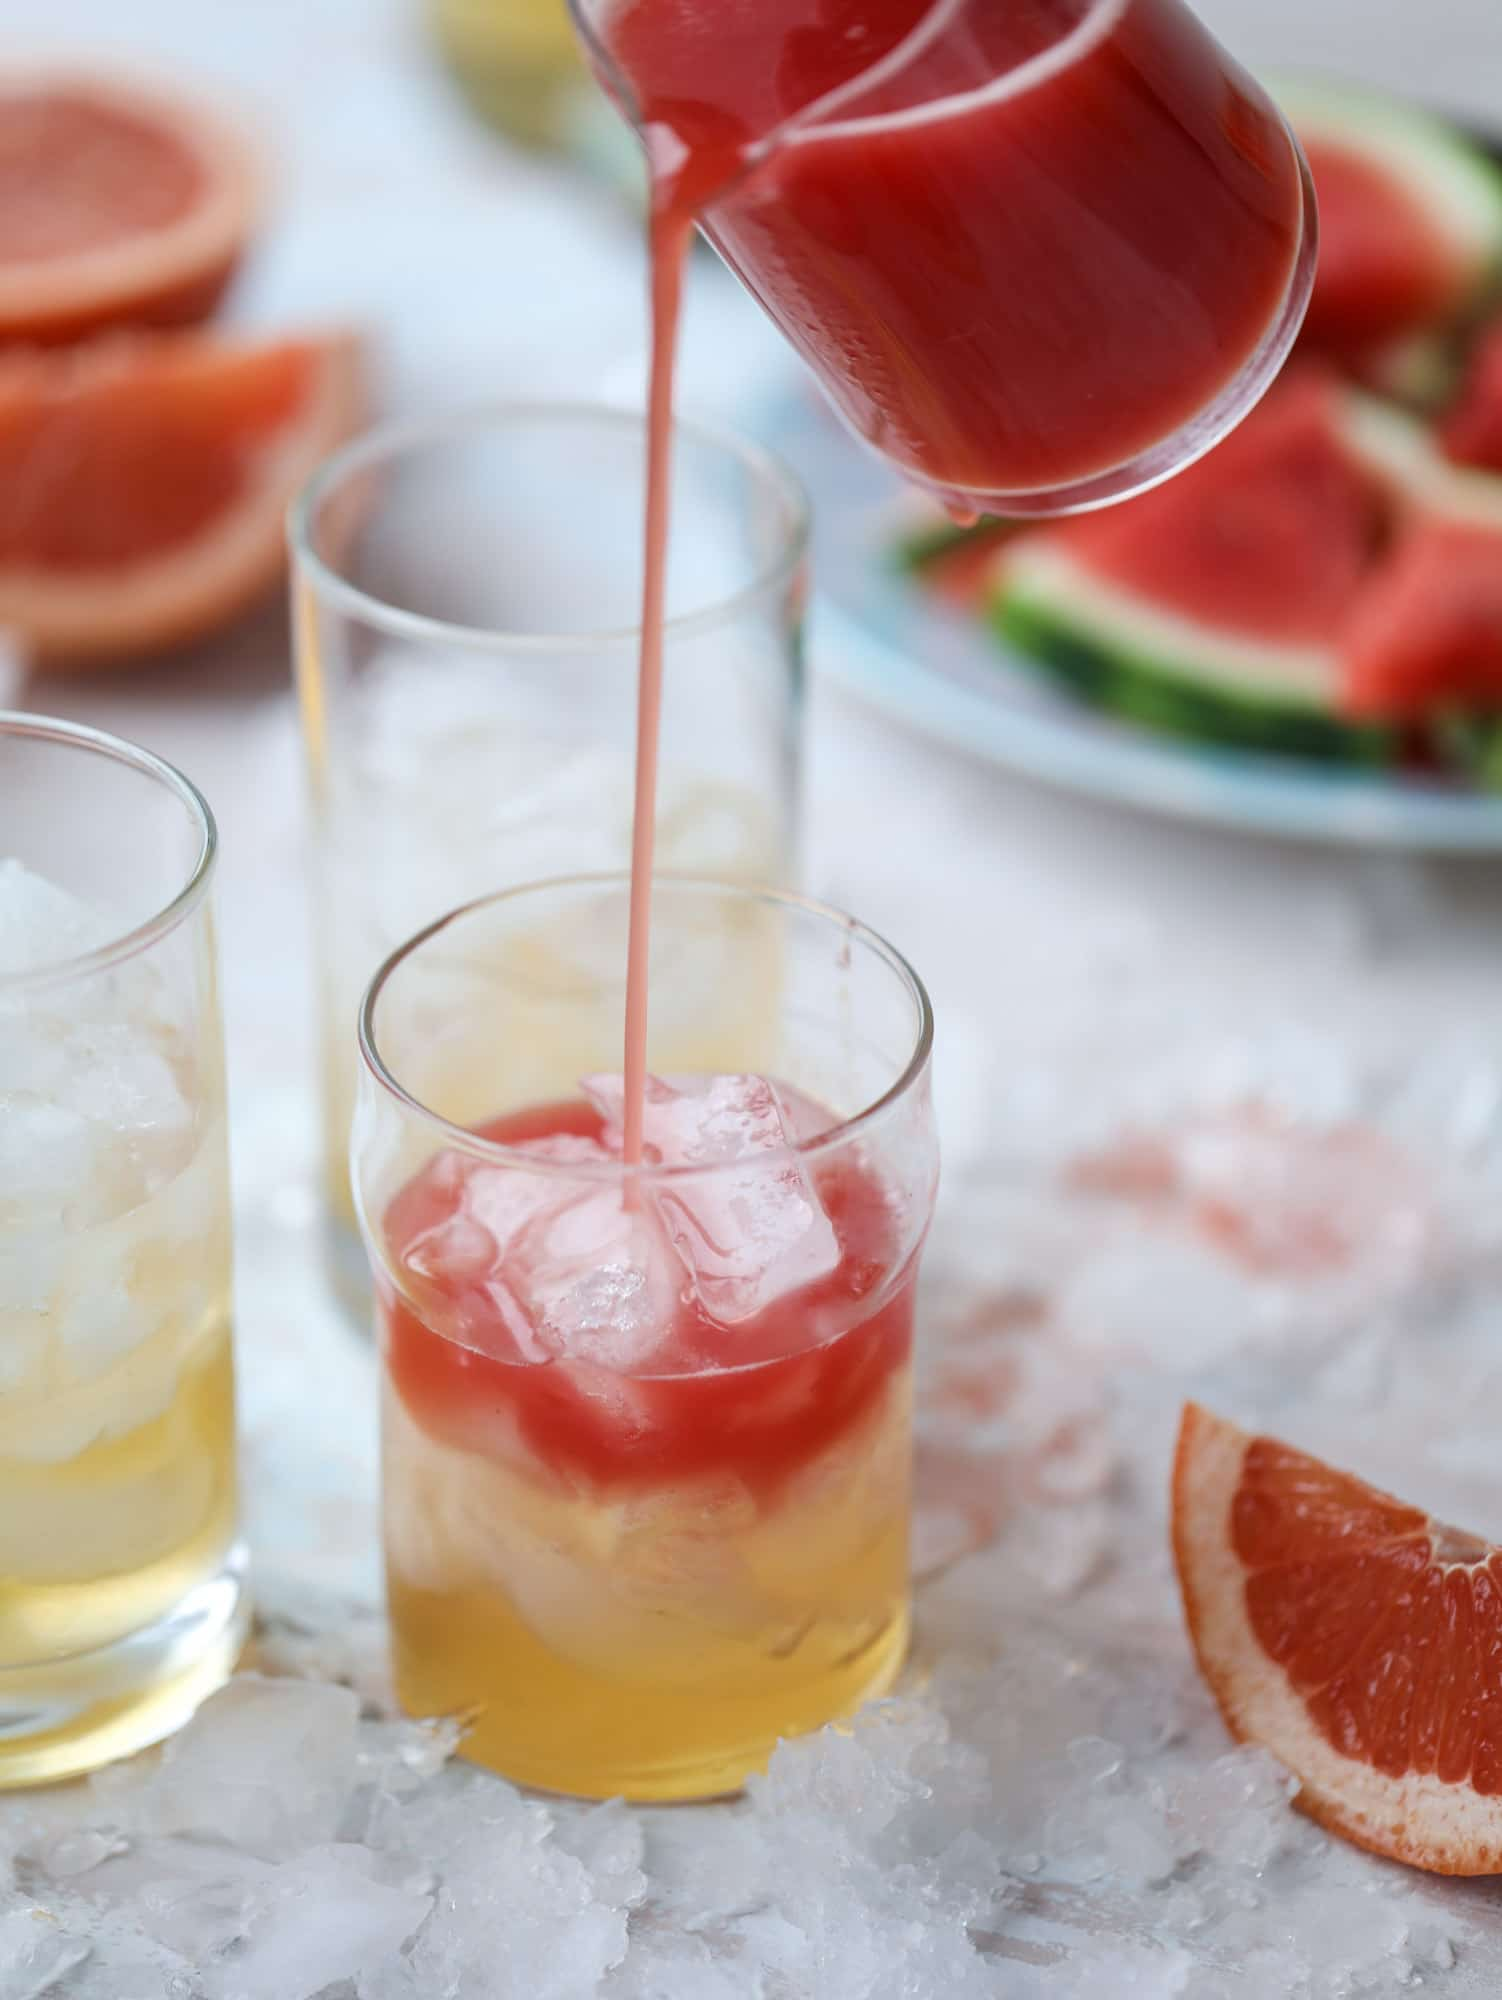 This watermelon grapefruit paloma cocktail is a summertime dream! Grapefruit syrup is super easy to make and when it's combined with fresh watermelon juice and tequila... oooh! Best happy hour ever. I howsweeteats.com #grapefruit #watermelon #paloma #cocktail #tequila